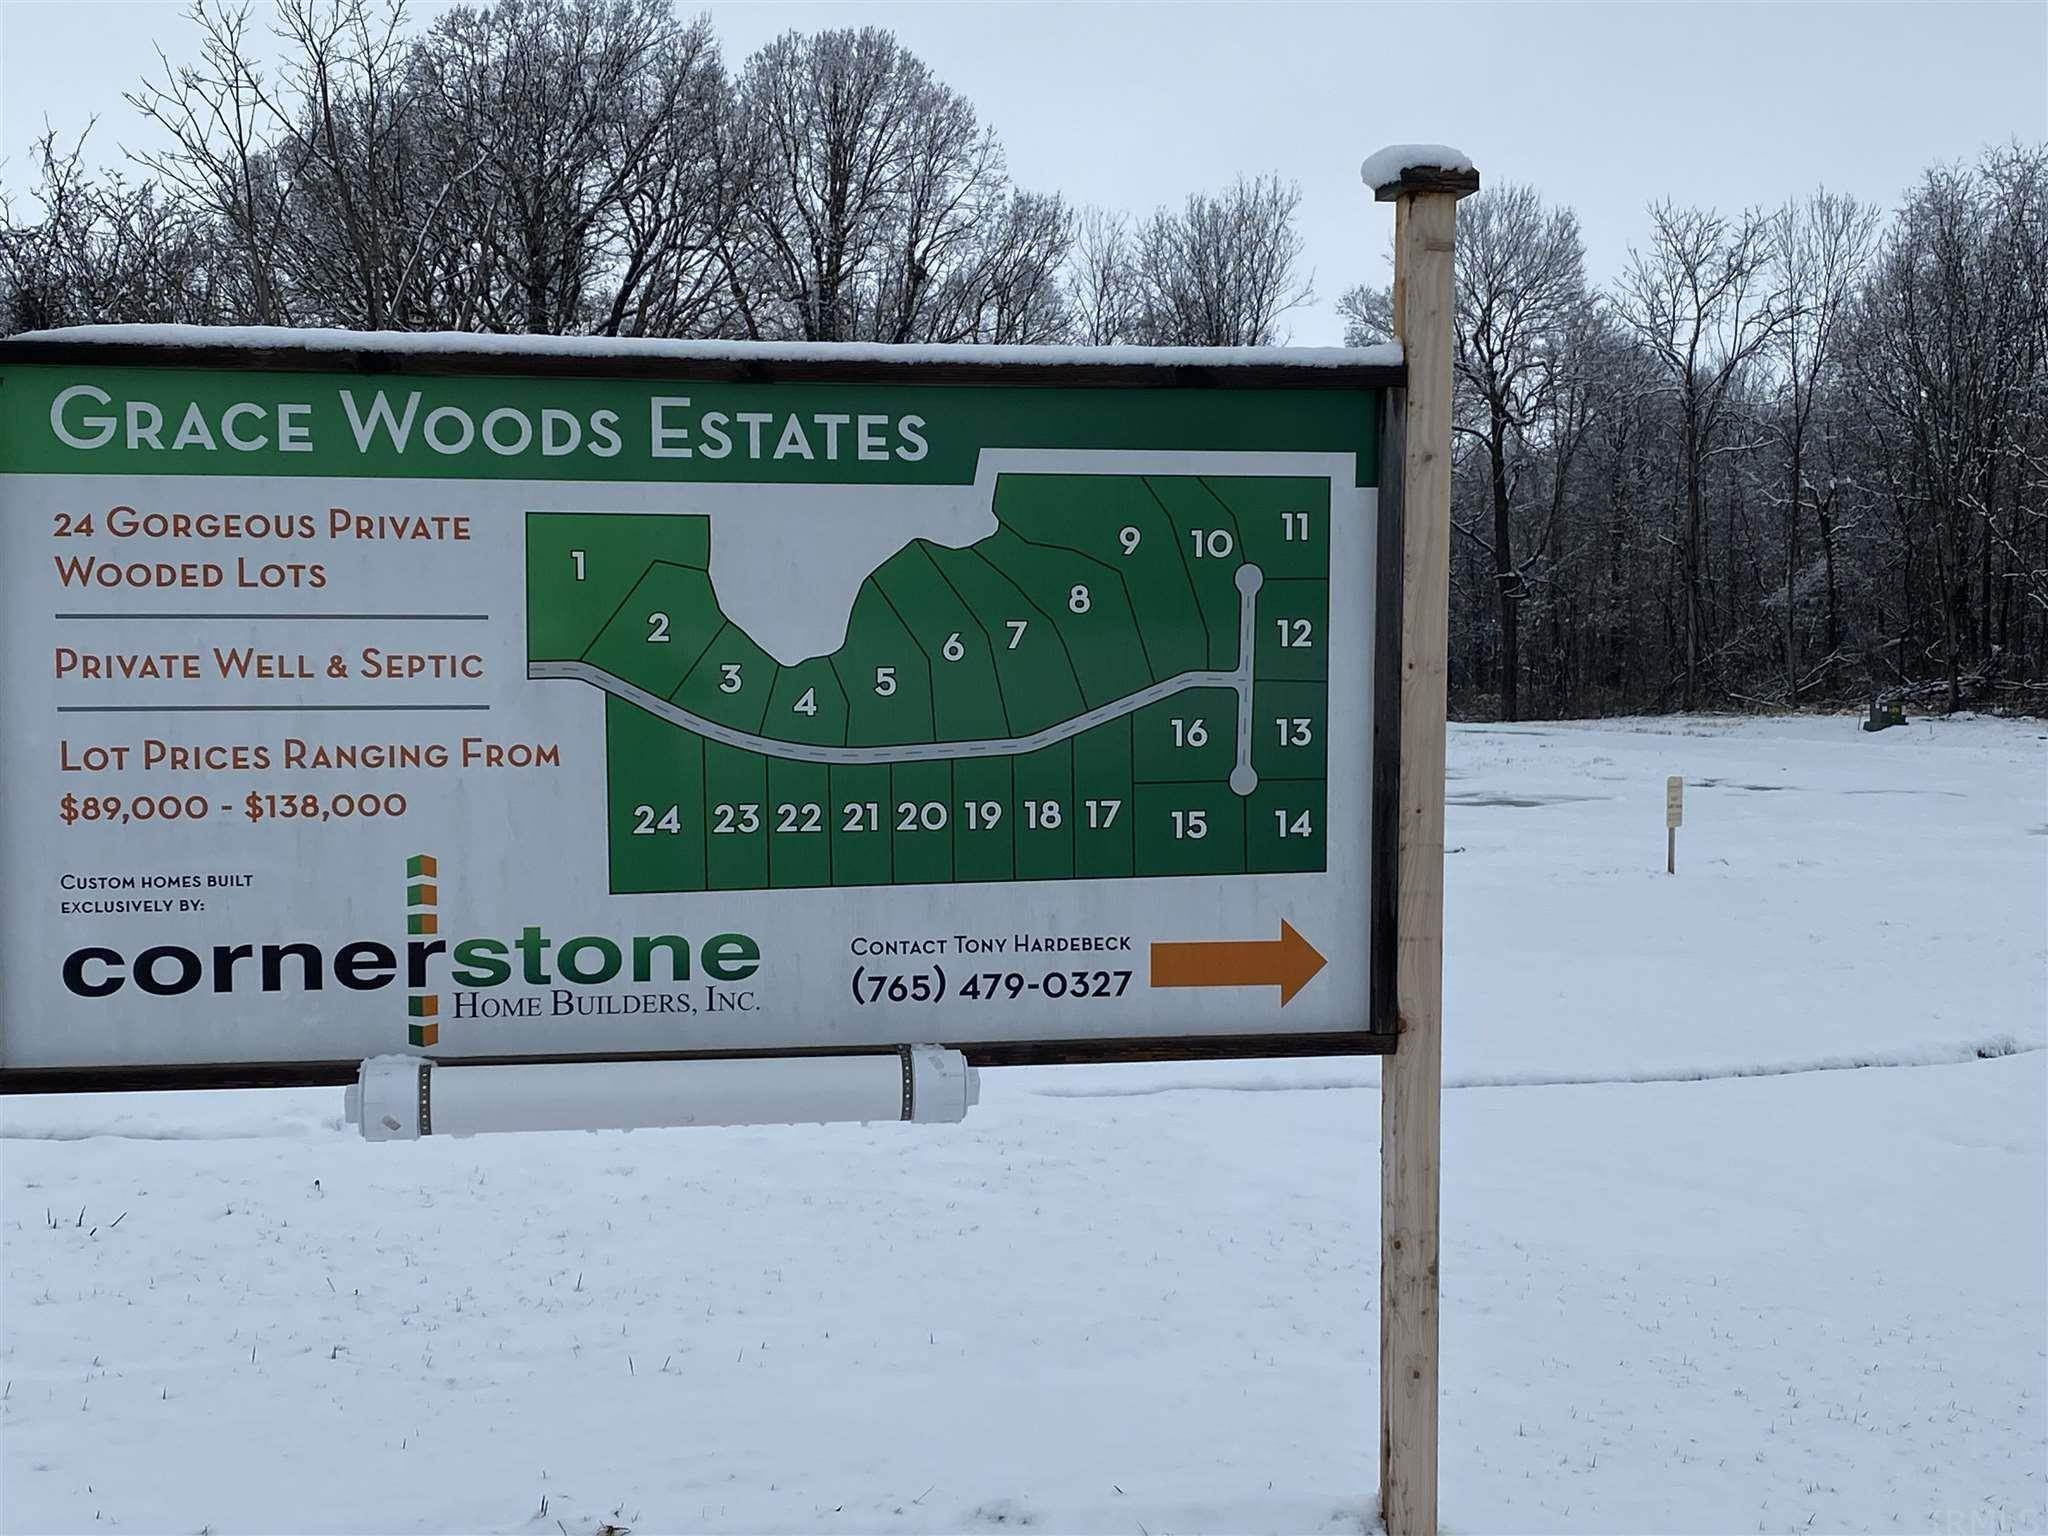 Residential Lots & Land for Sale at 9170 Herring Lane Battle Ground, Indiana 47920 United States